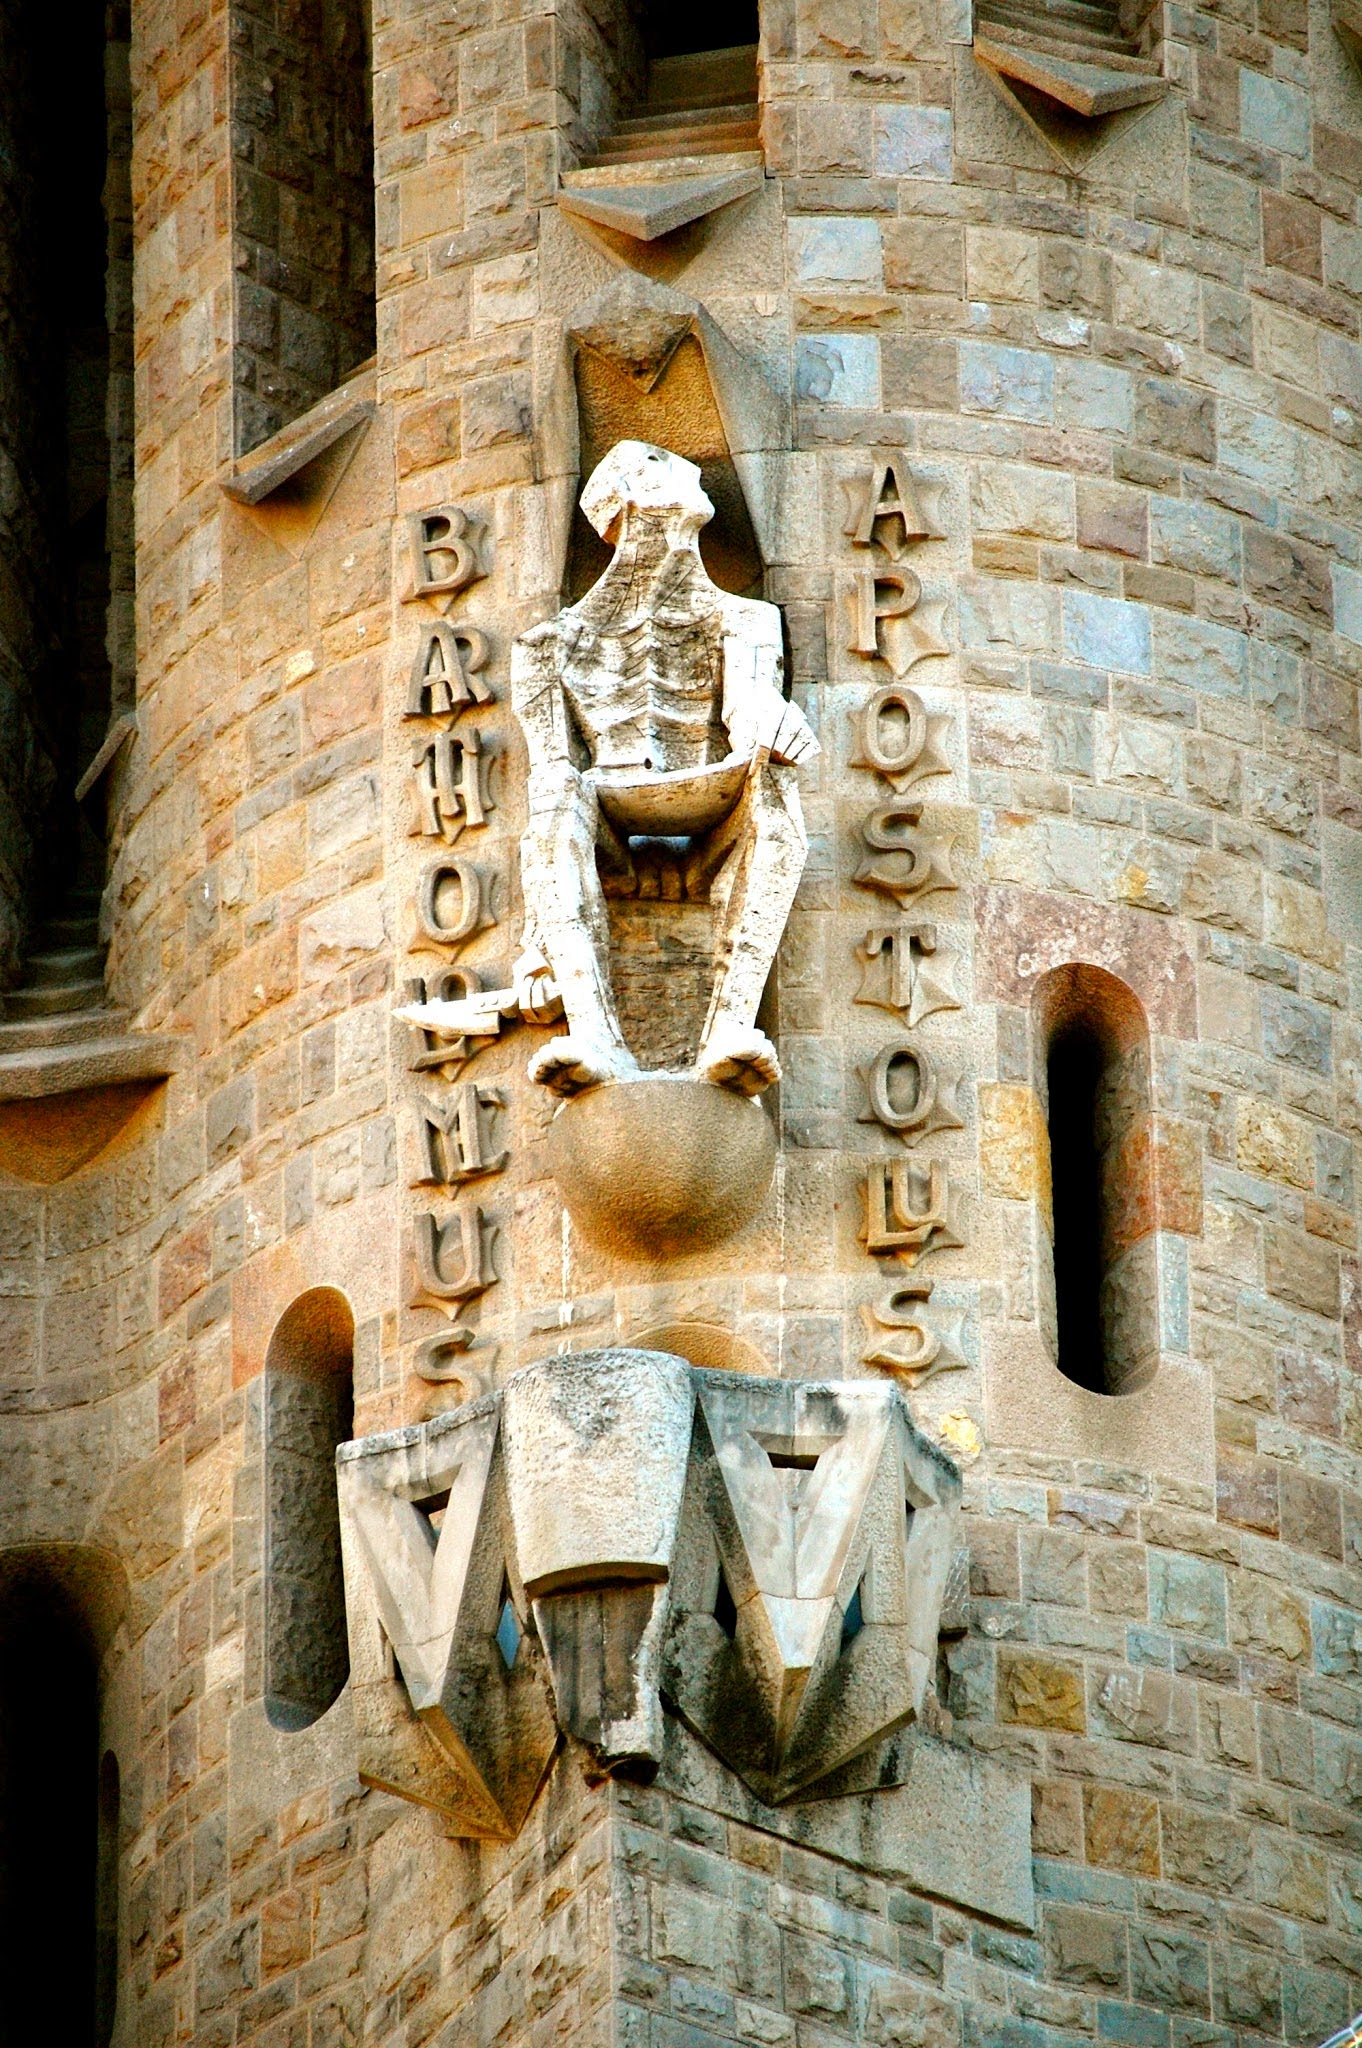 Carving of Apostle Bartholomew on Passion Facade, Sagrada Familia